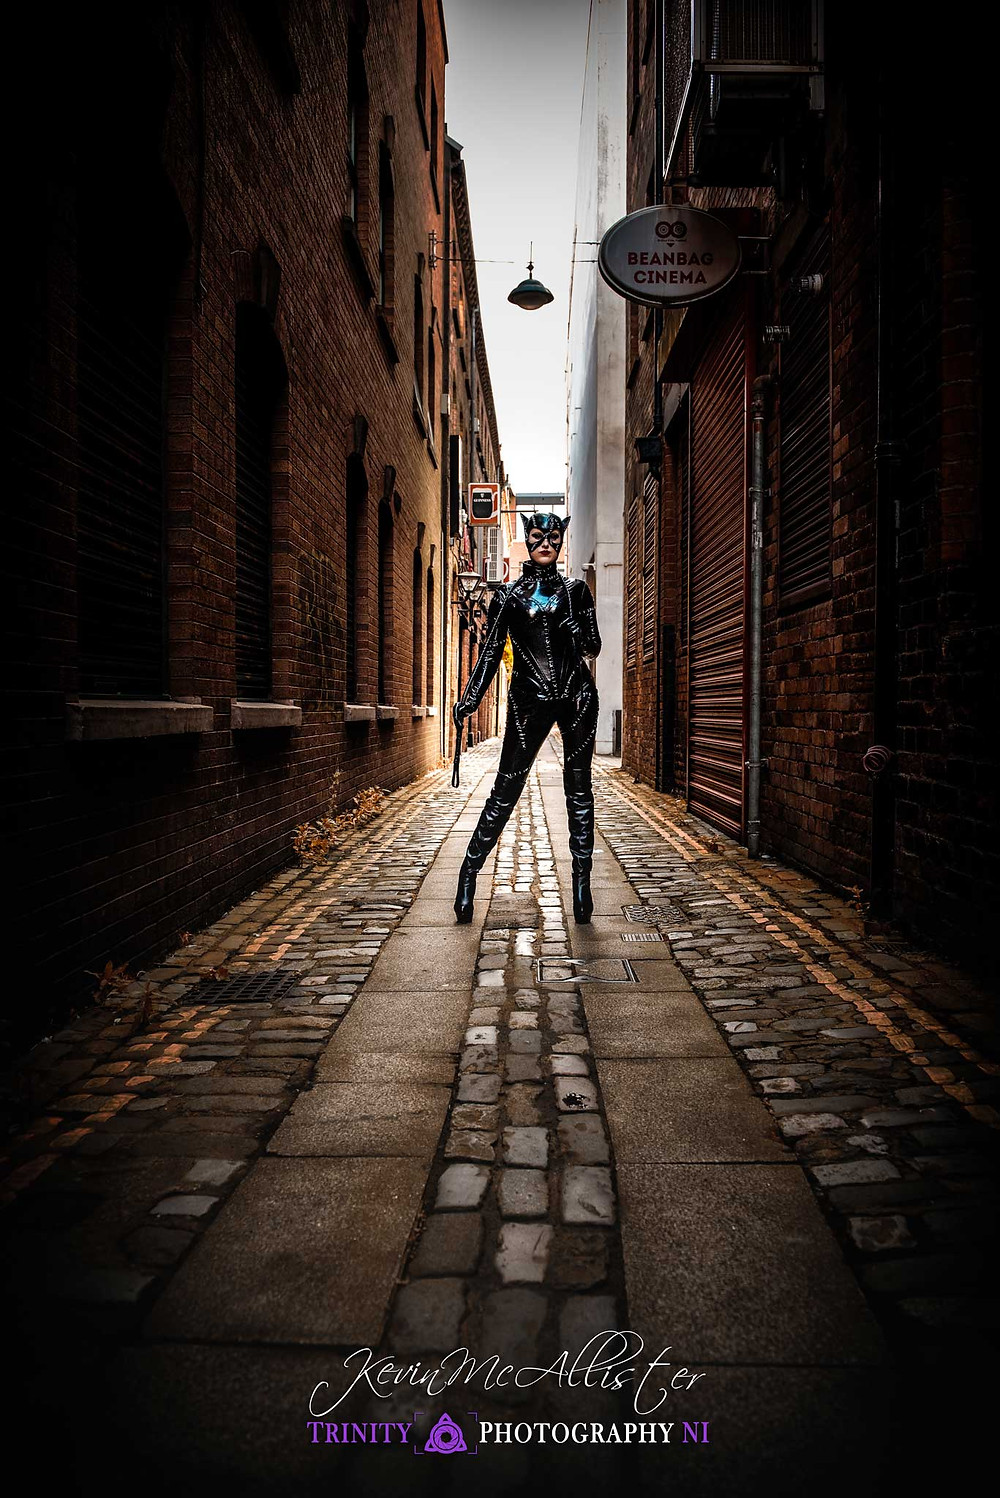 catwoman stands astride the cobblestones on a back alley in belfast